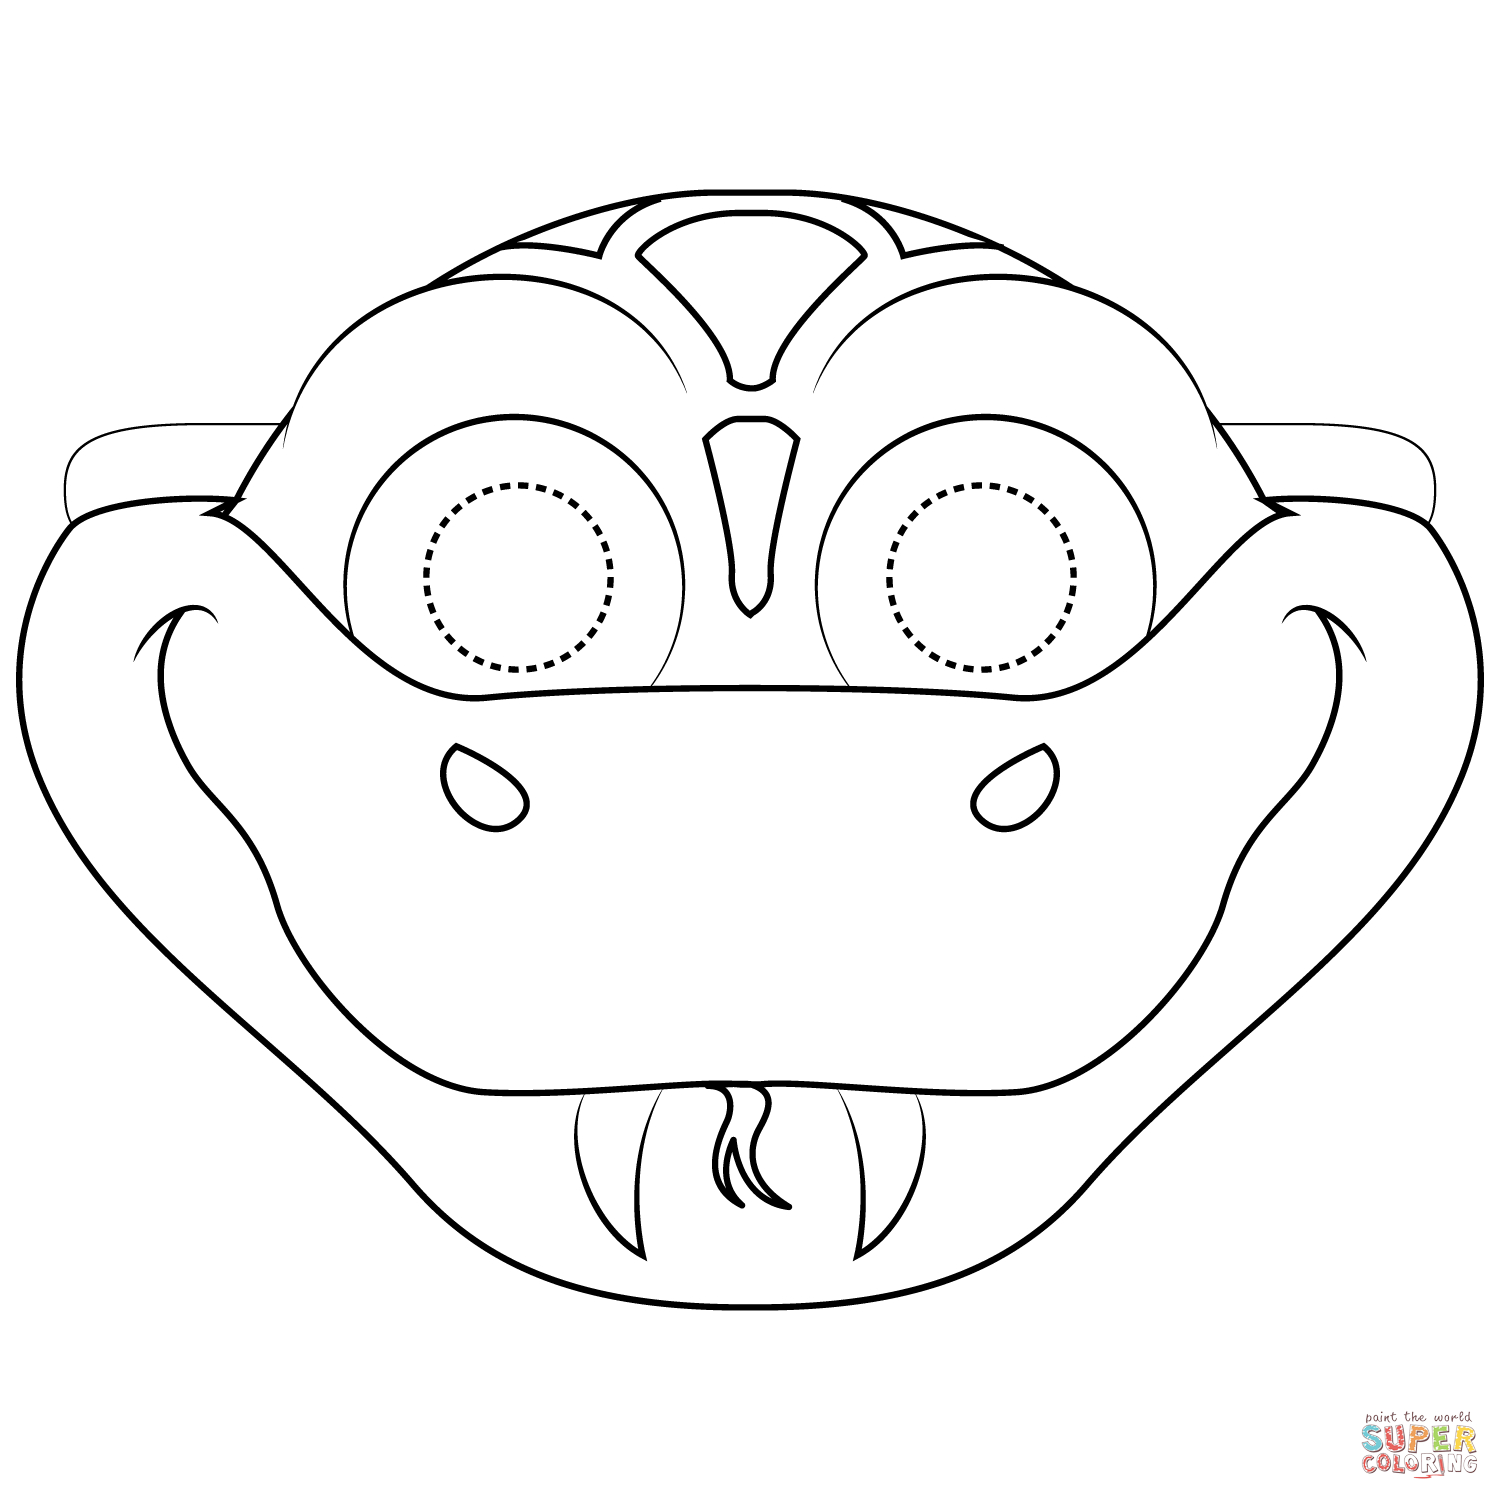 Snake Mask Coloring Page | Free Printable Coloring Pages - Free Printable Lizard Mask